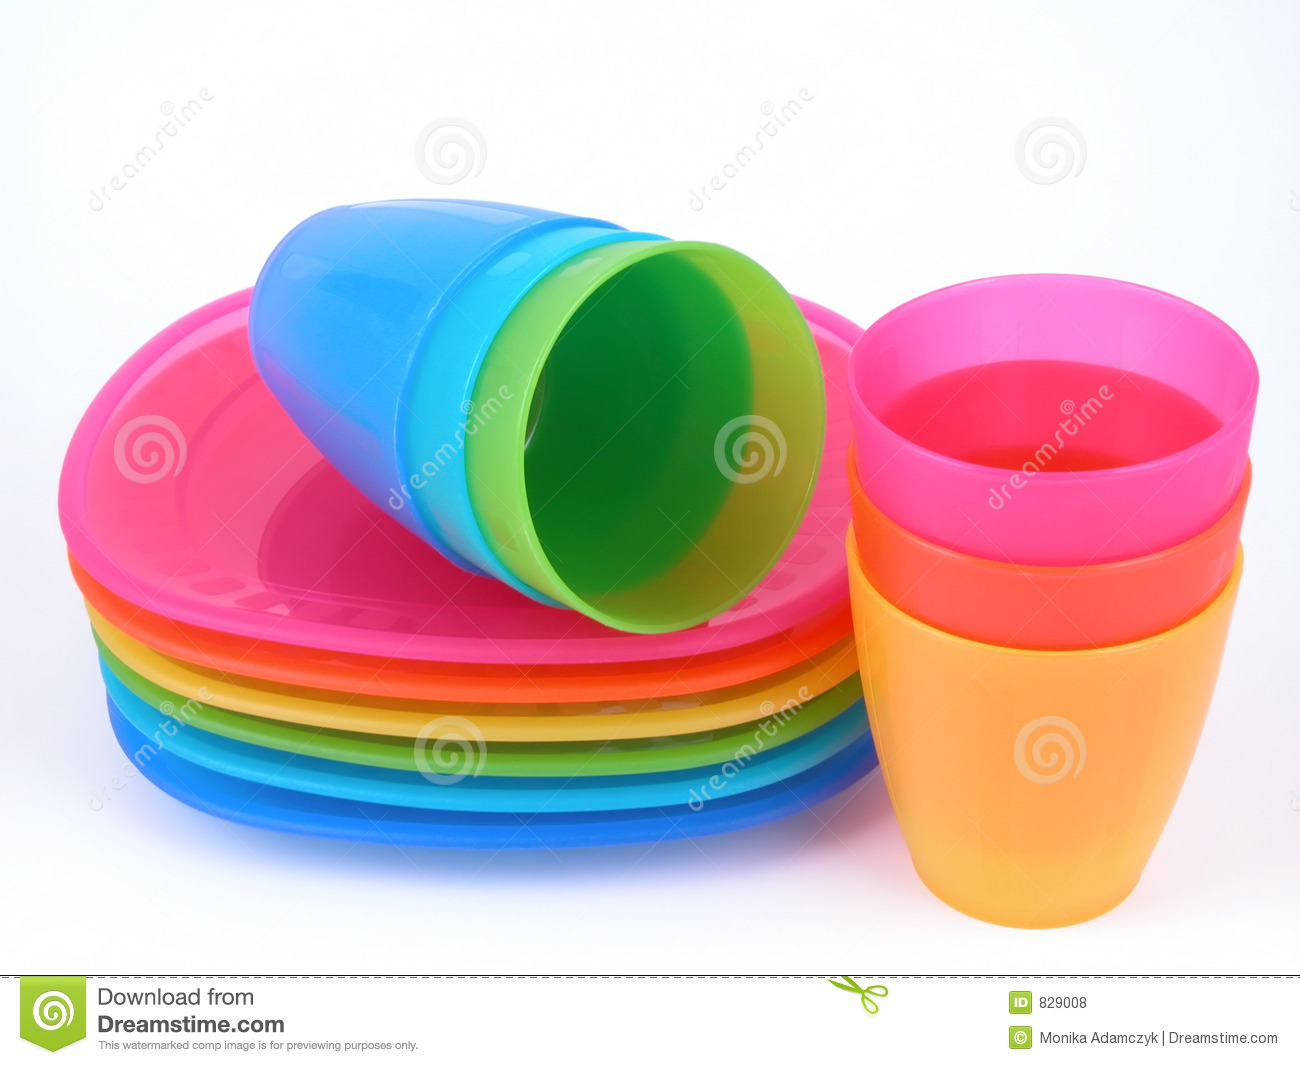 Plastic cups and plates. Stack colour.  sc 1 st  Dreamstime.com & Plastic cups and plates stock photo. Image of stack colour - 829008